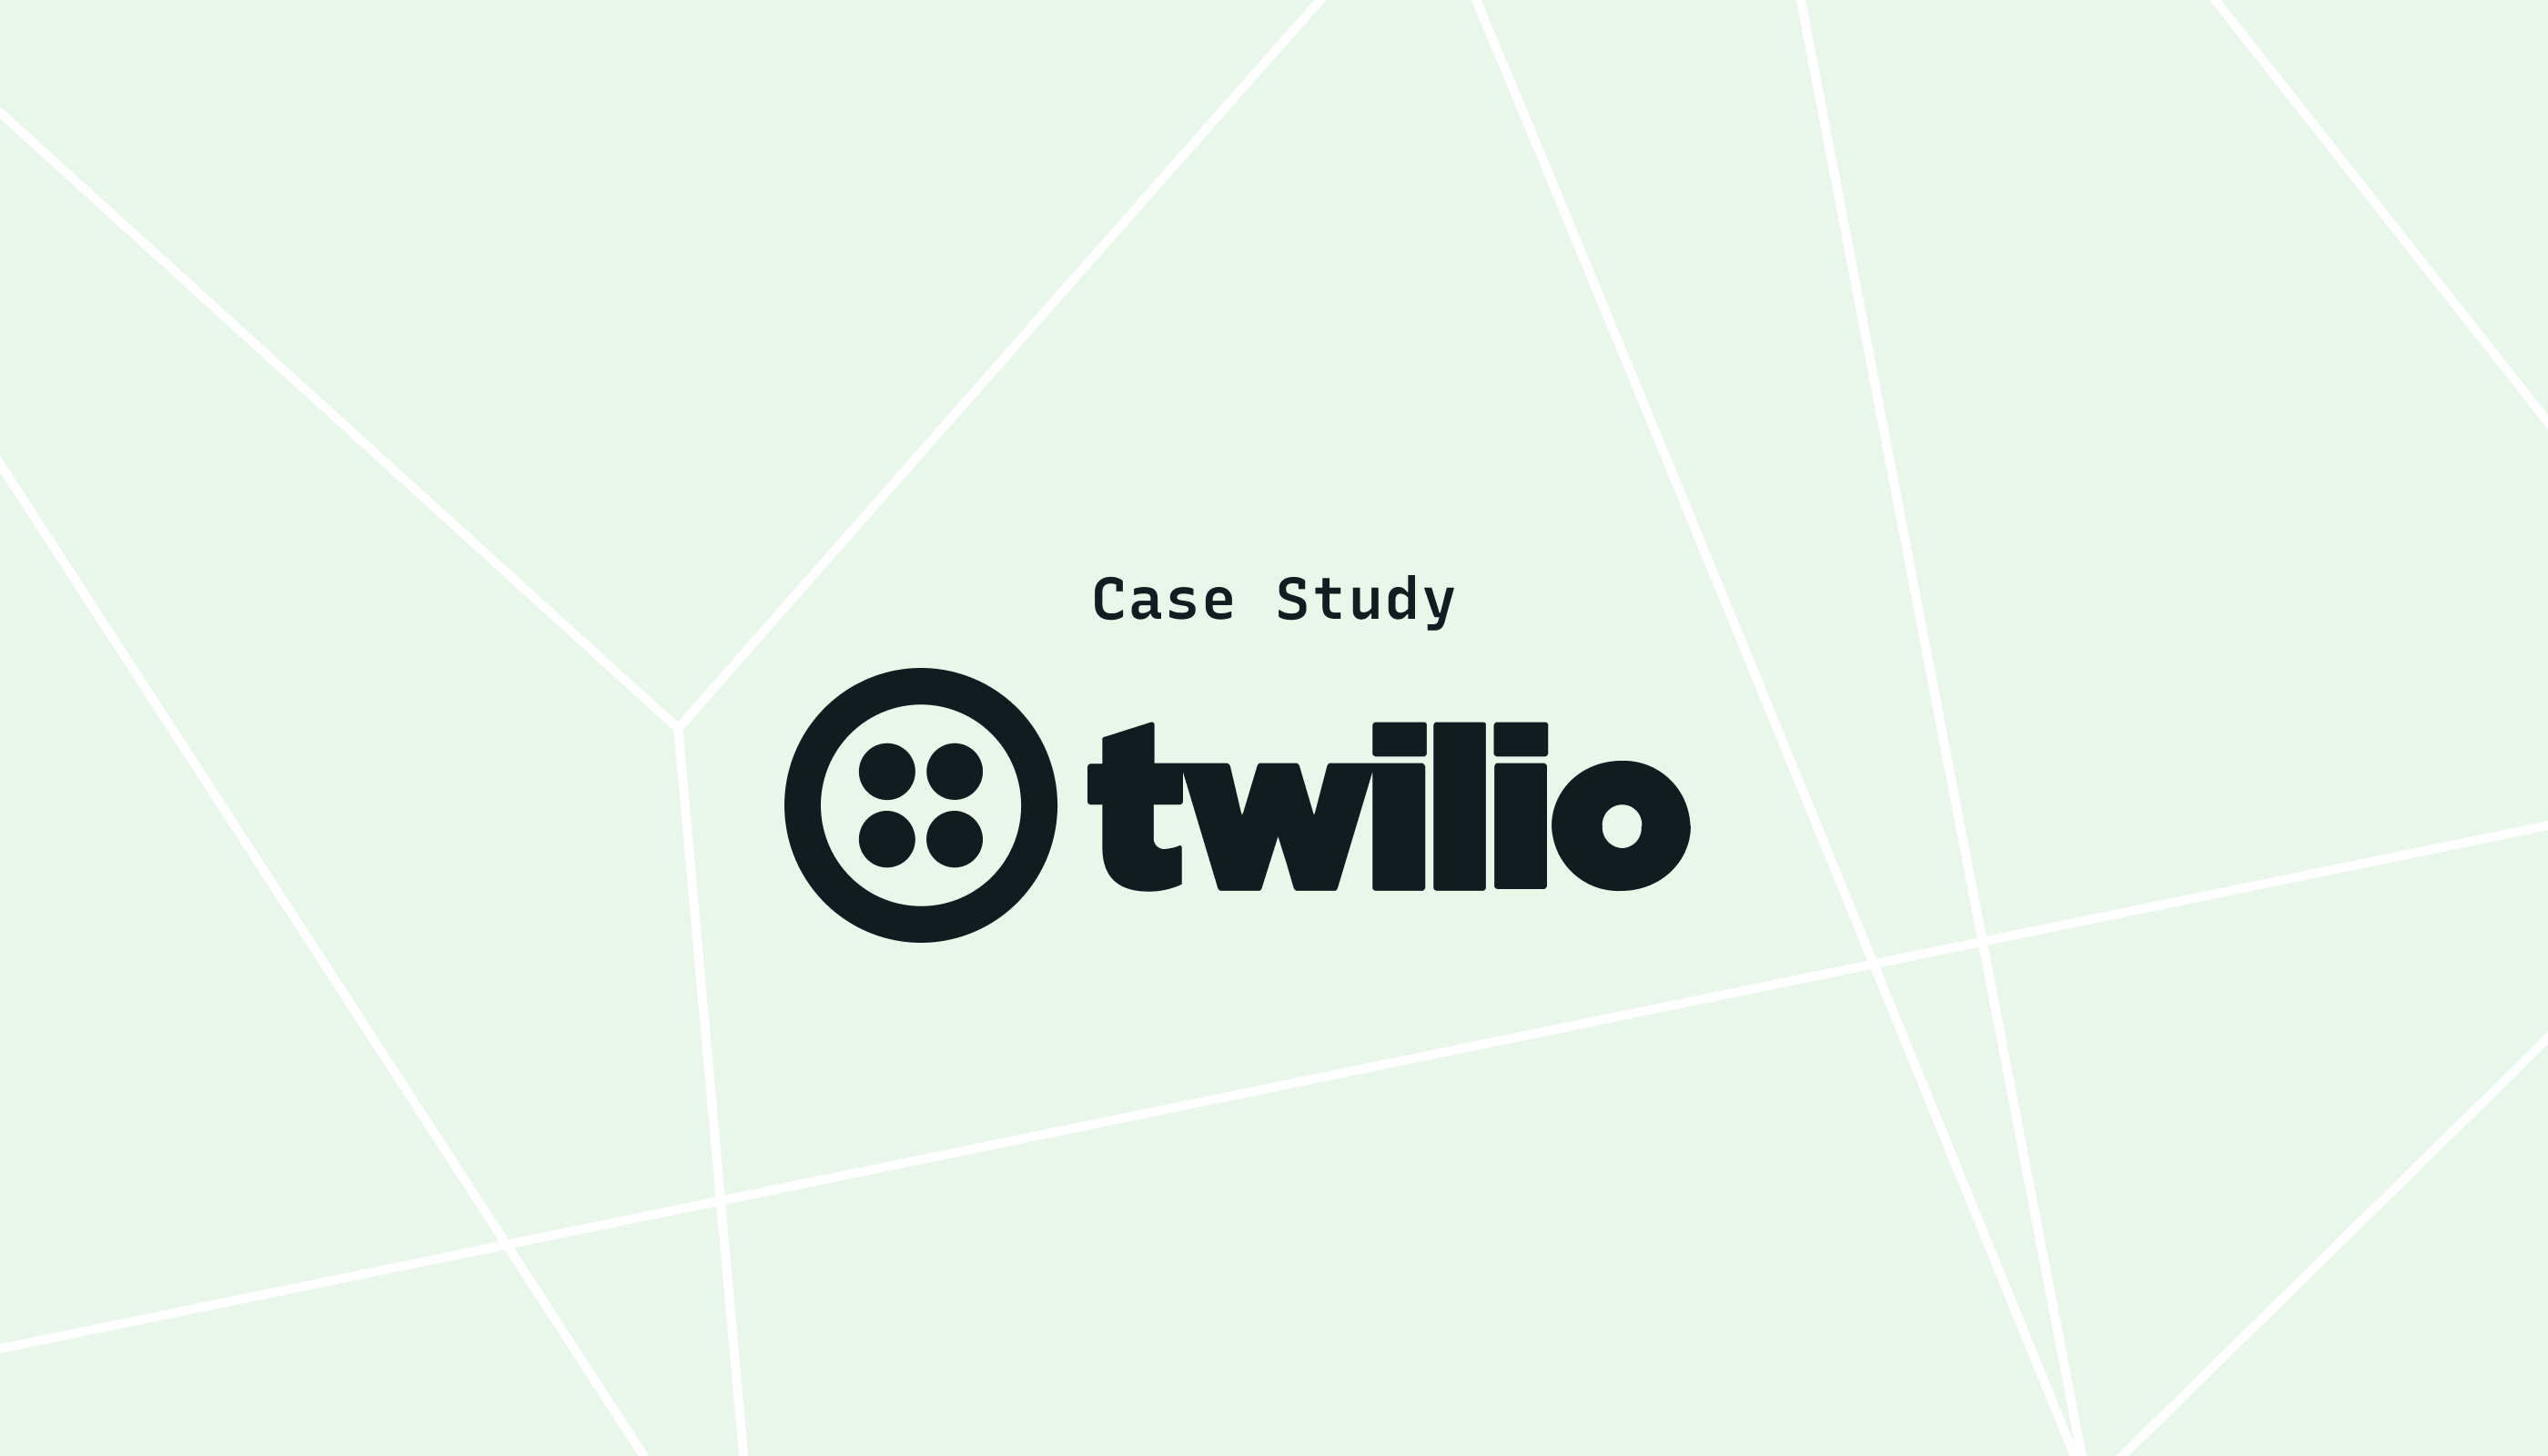 Twilio Improves Mean Time To Resolution (MTTR) by 92% with Lightstep